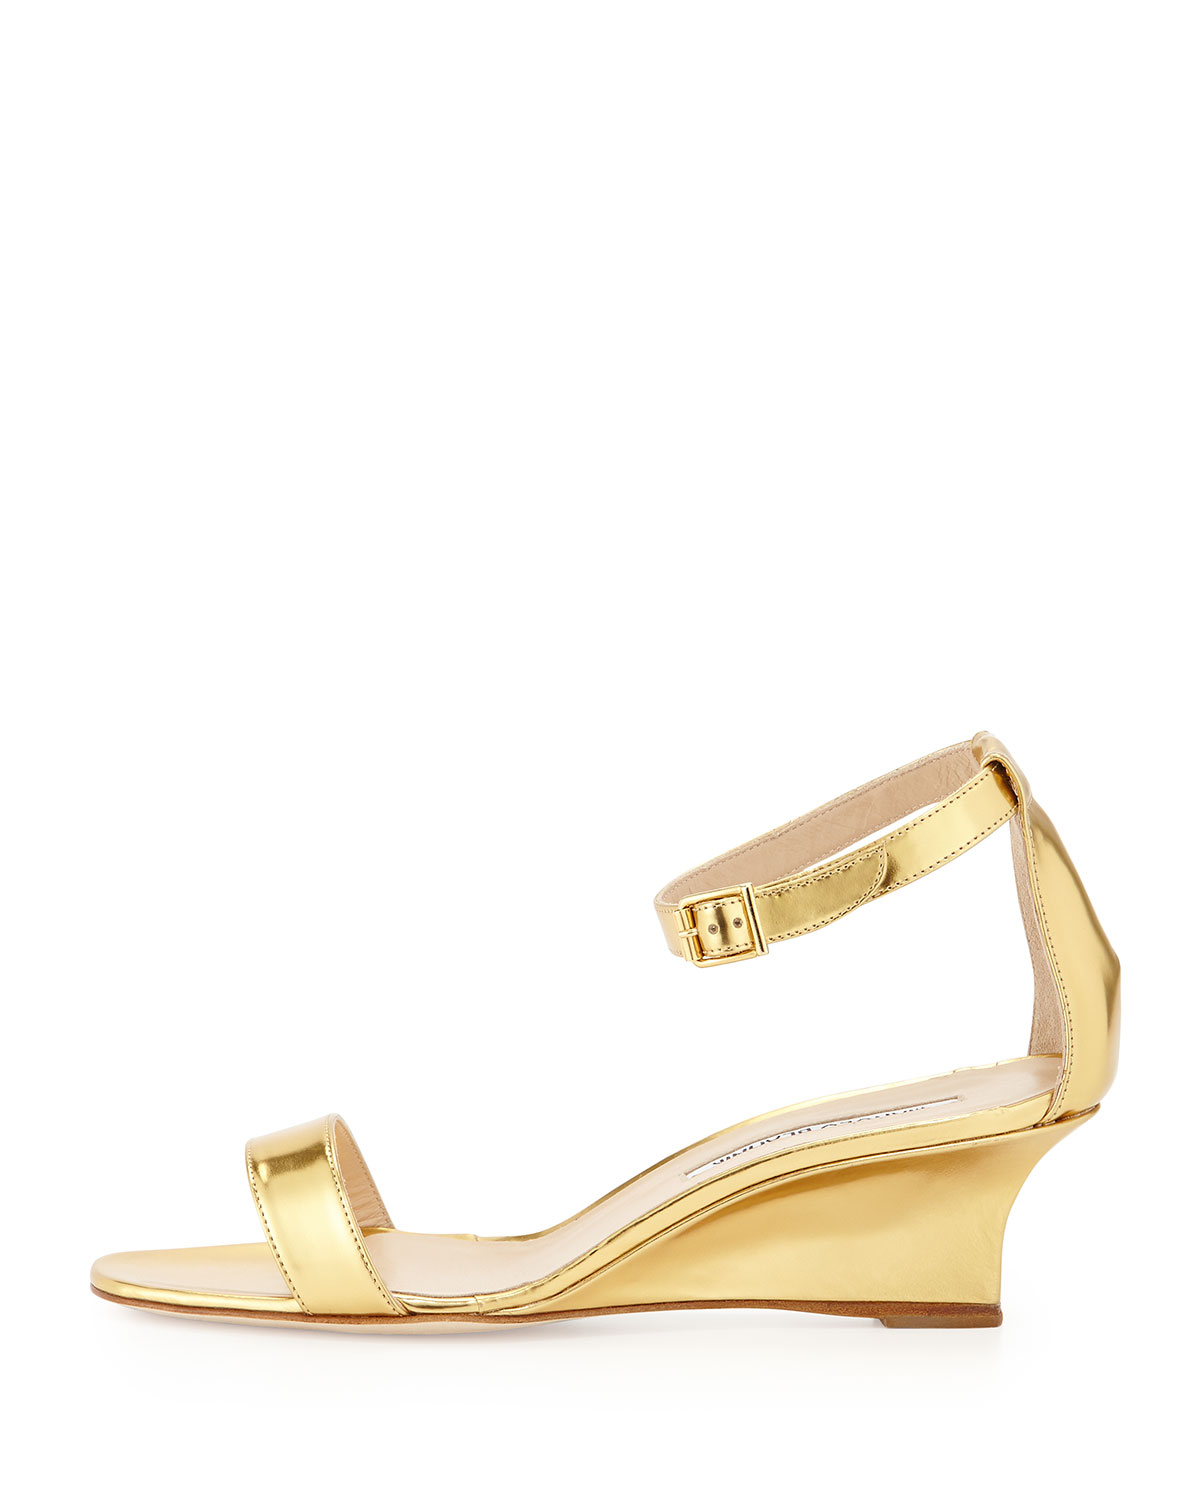 101f6cebd6a6 Lyst - Manolo Blahnik Valere Metallic Demi-wedge Sandal in Metallic